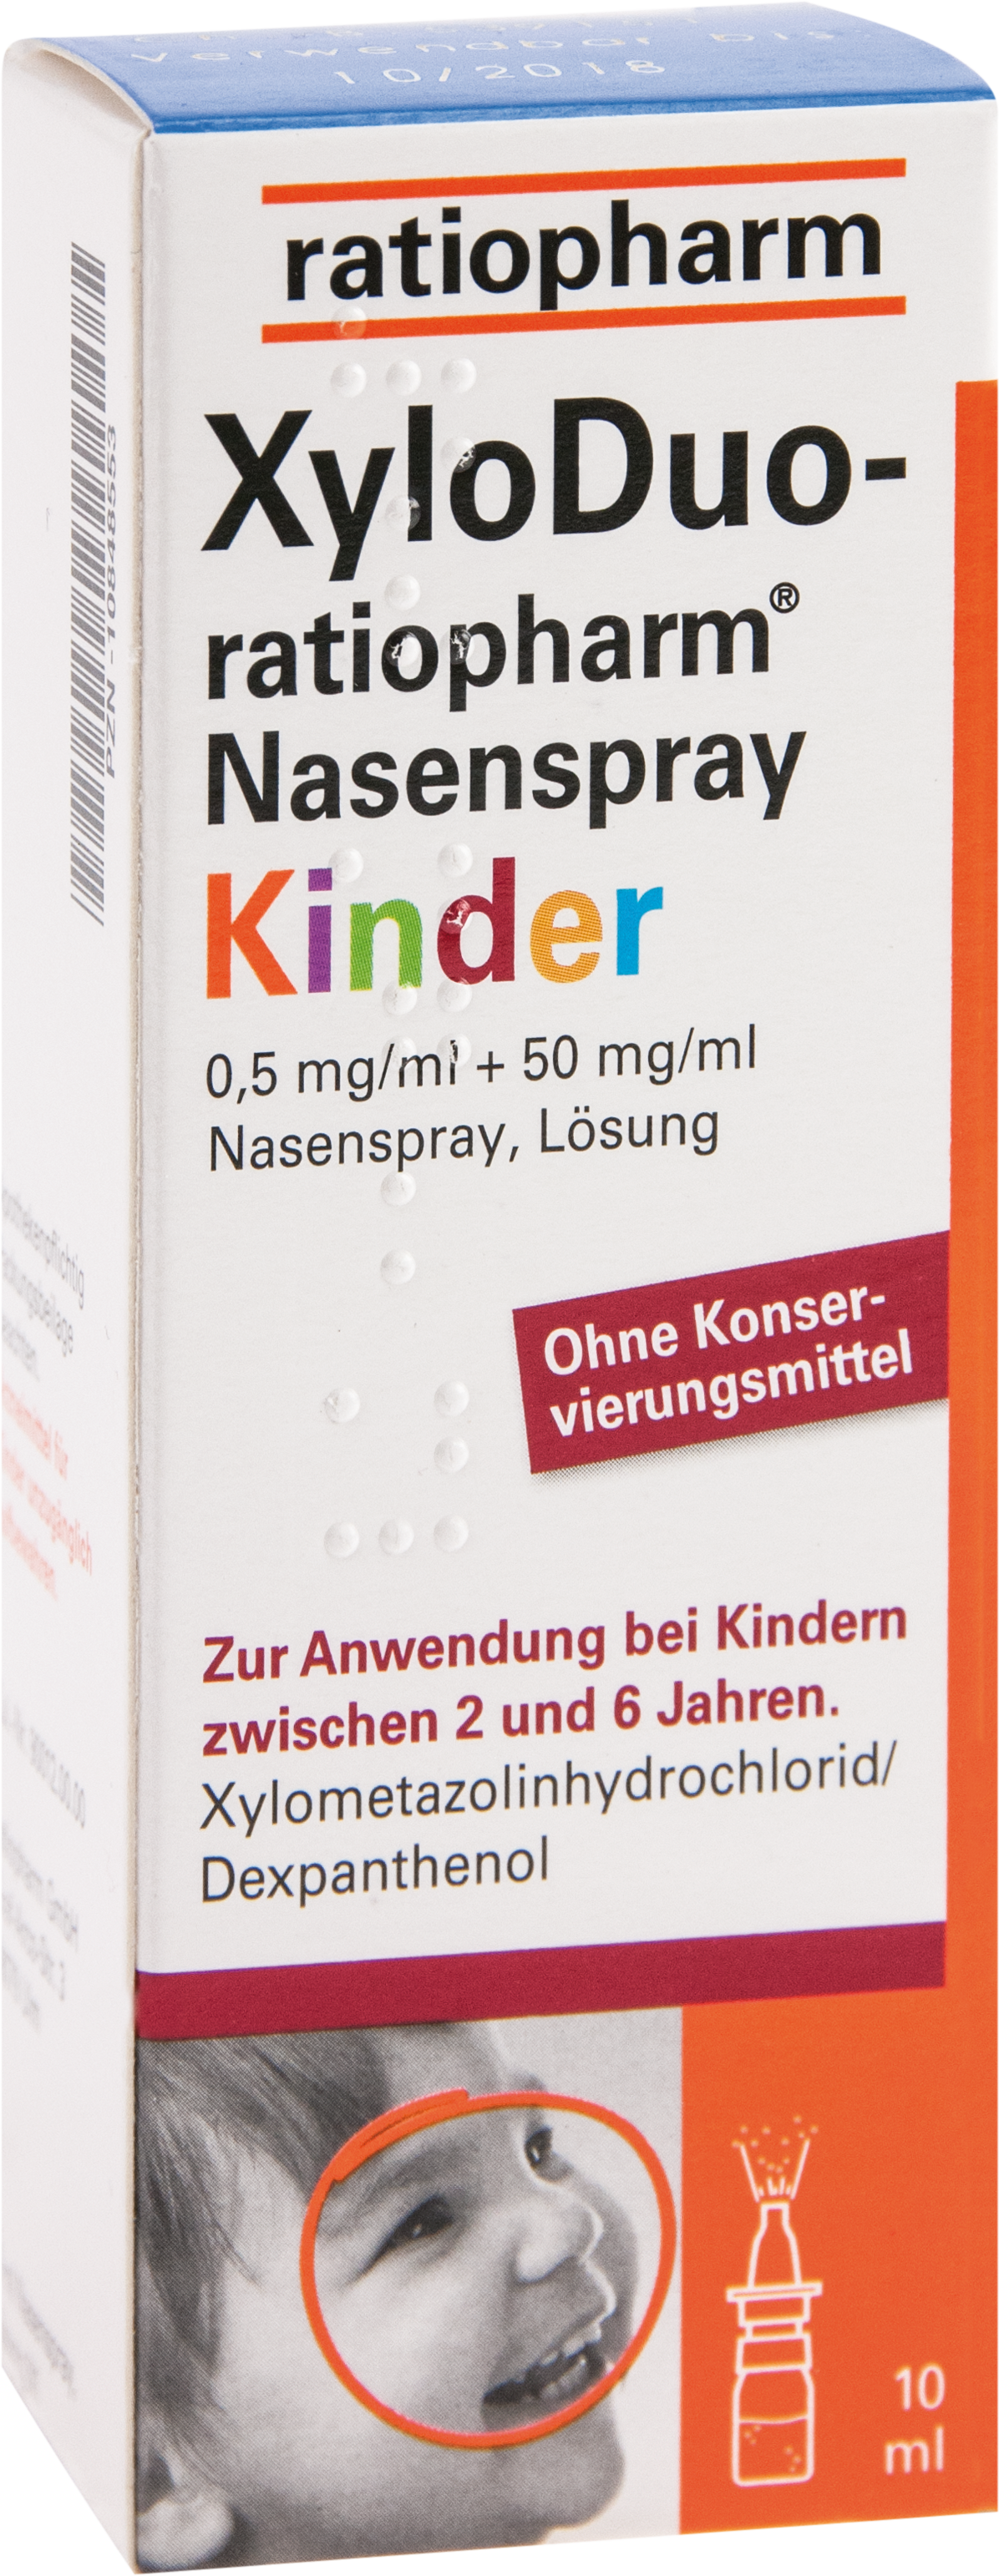 XyloDuo-ratio Nasenspr.Kinder0.5mg/ml+50mg/ml o.K.